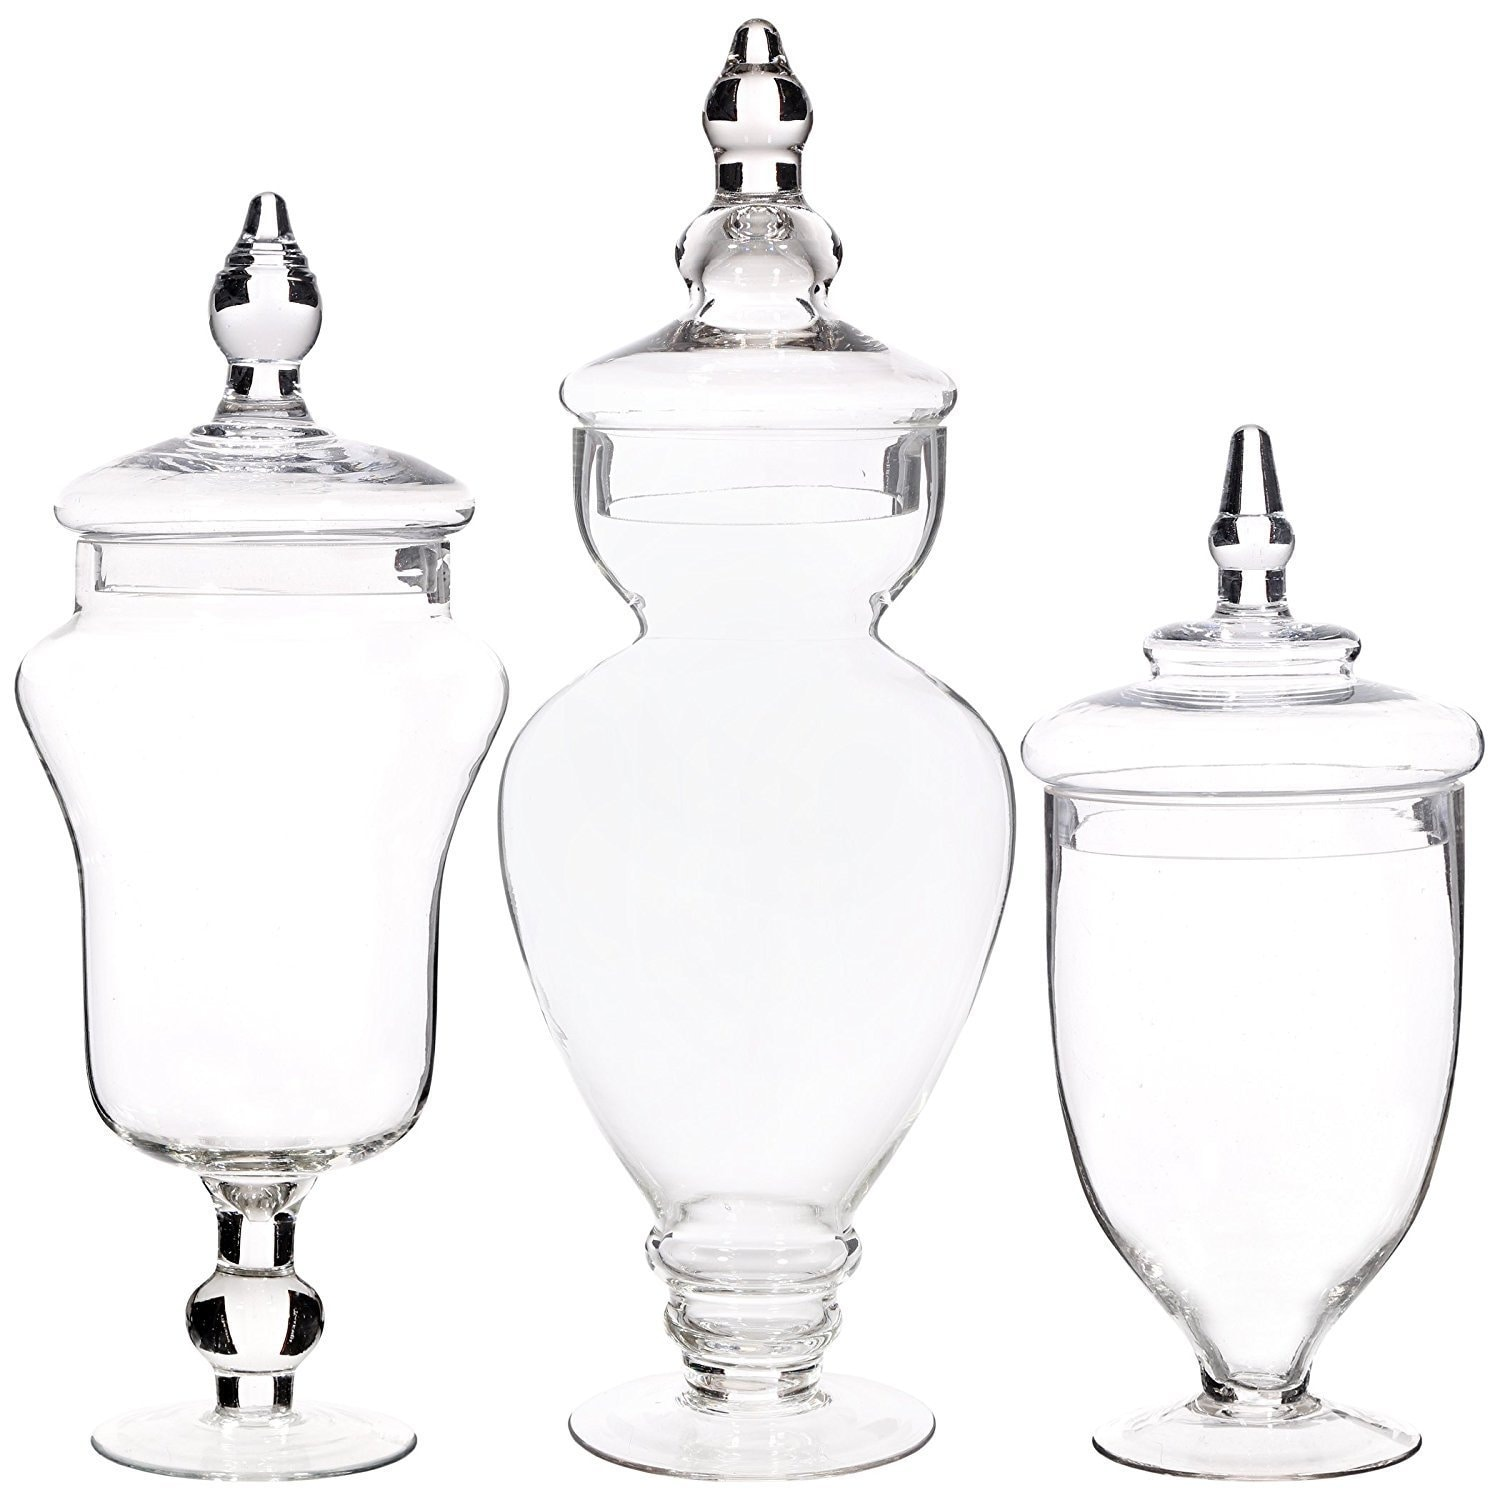 Palais Glware Clear Gl Apothecary Jars Set Of 3 Wedding Candy Buffet Containers Large Free Shipping Today